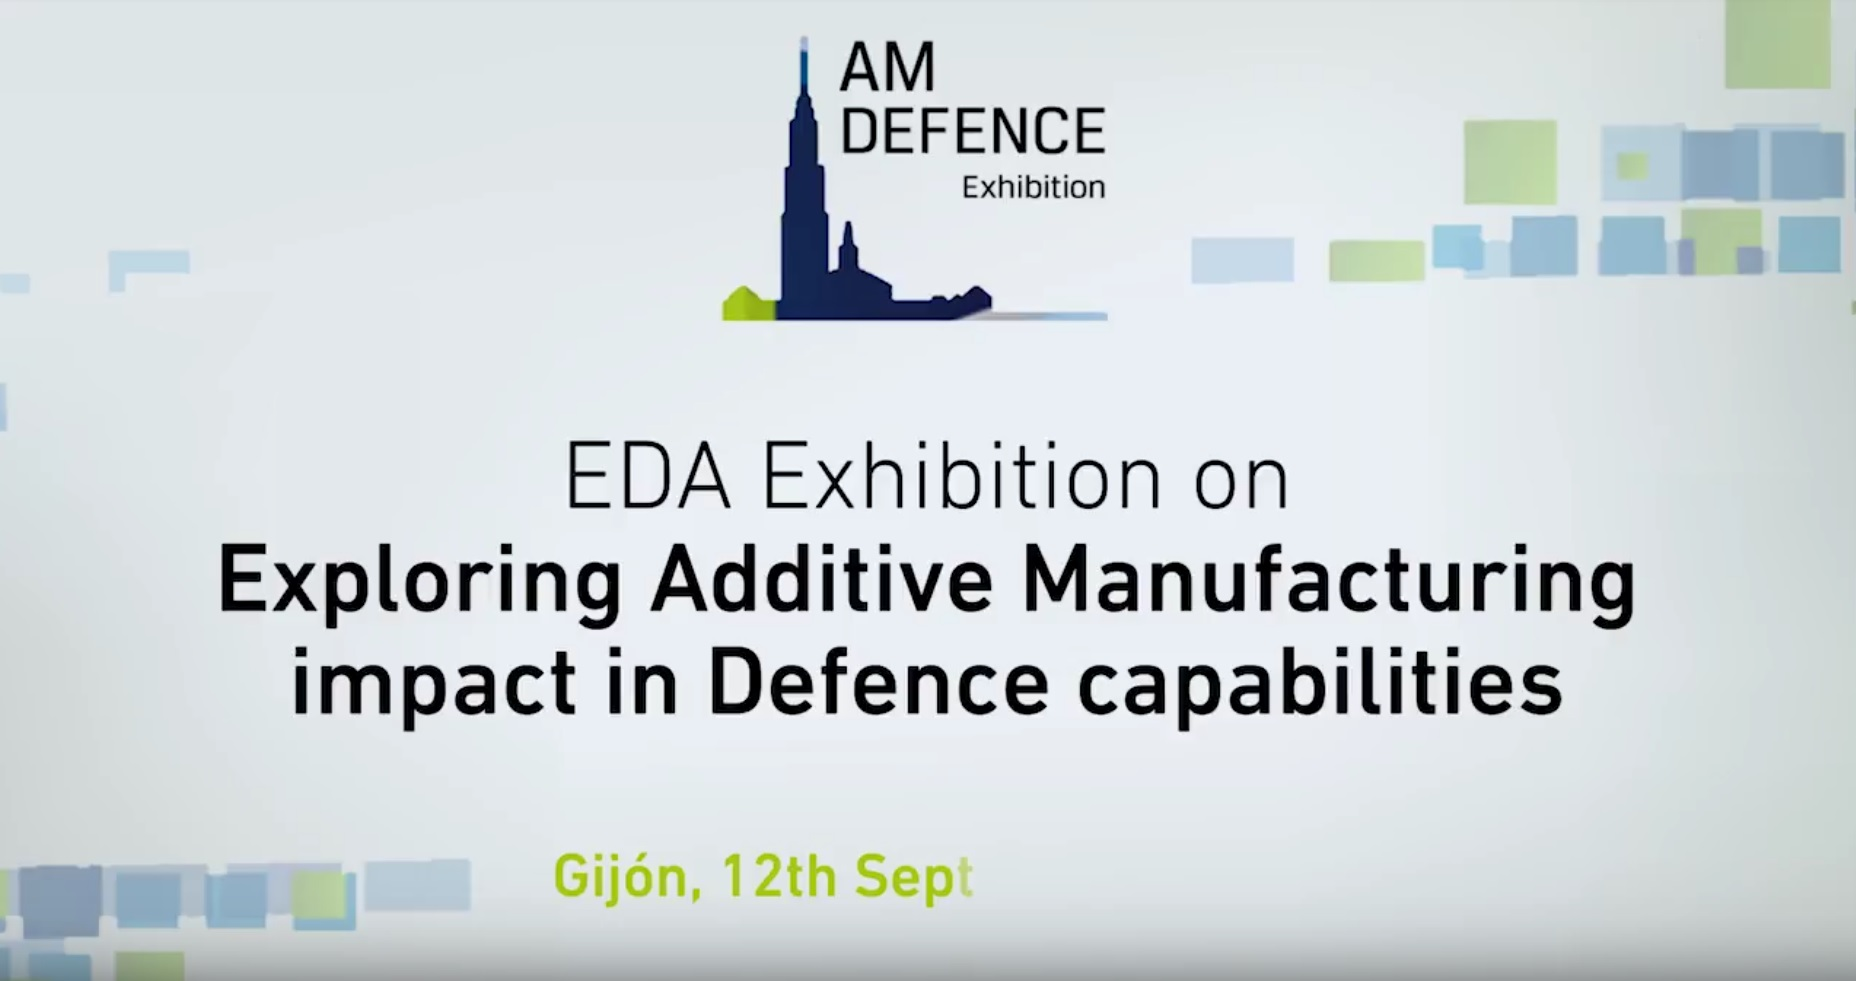 """AWGE Tecnologies attended the EDA Exhibition """"Exploring Additive Manufacturing impact in Defence capabilities"""""""